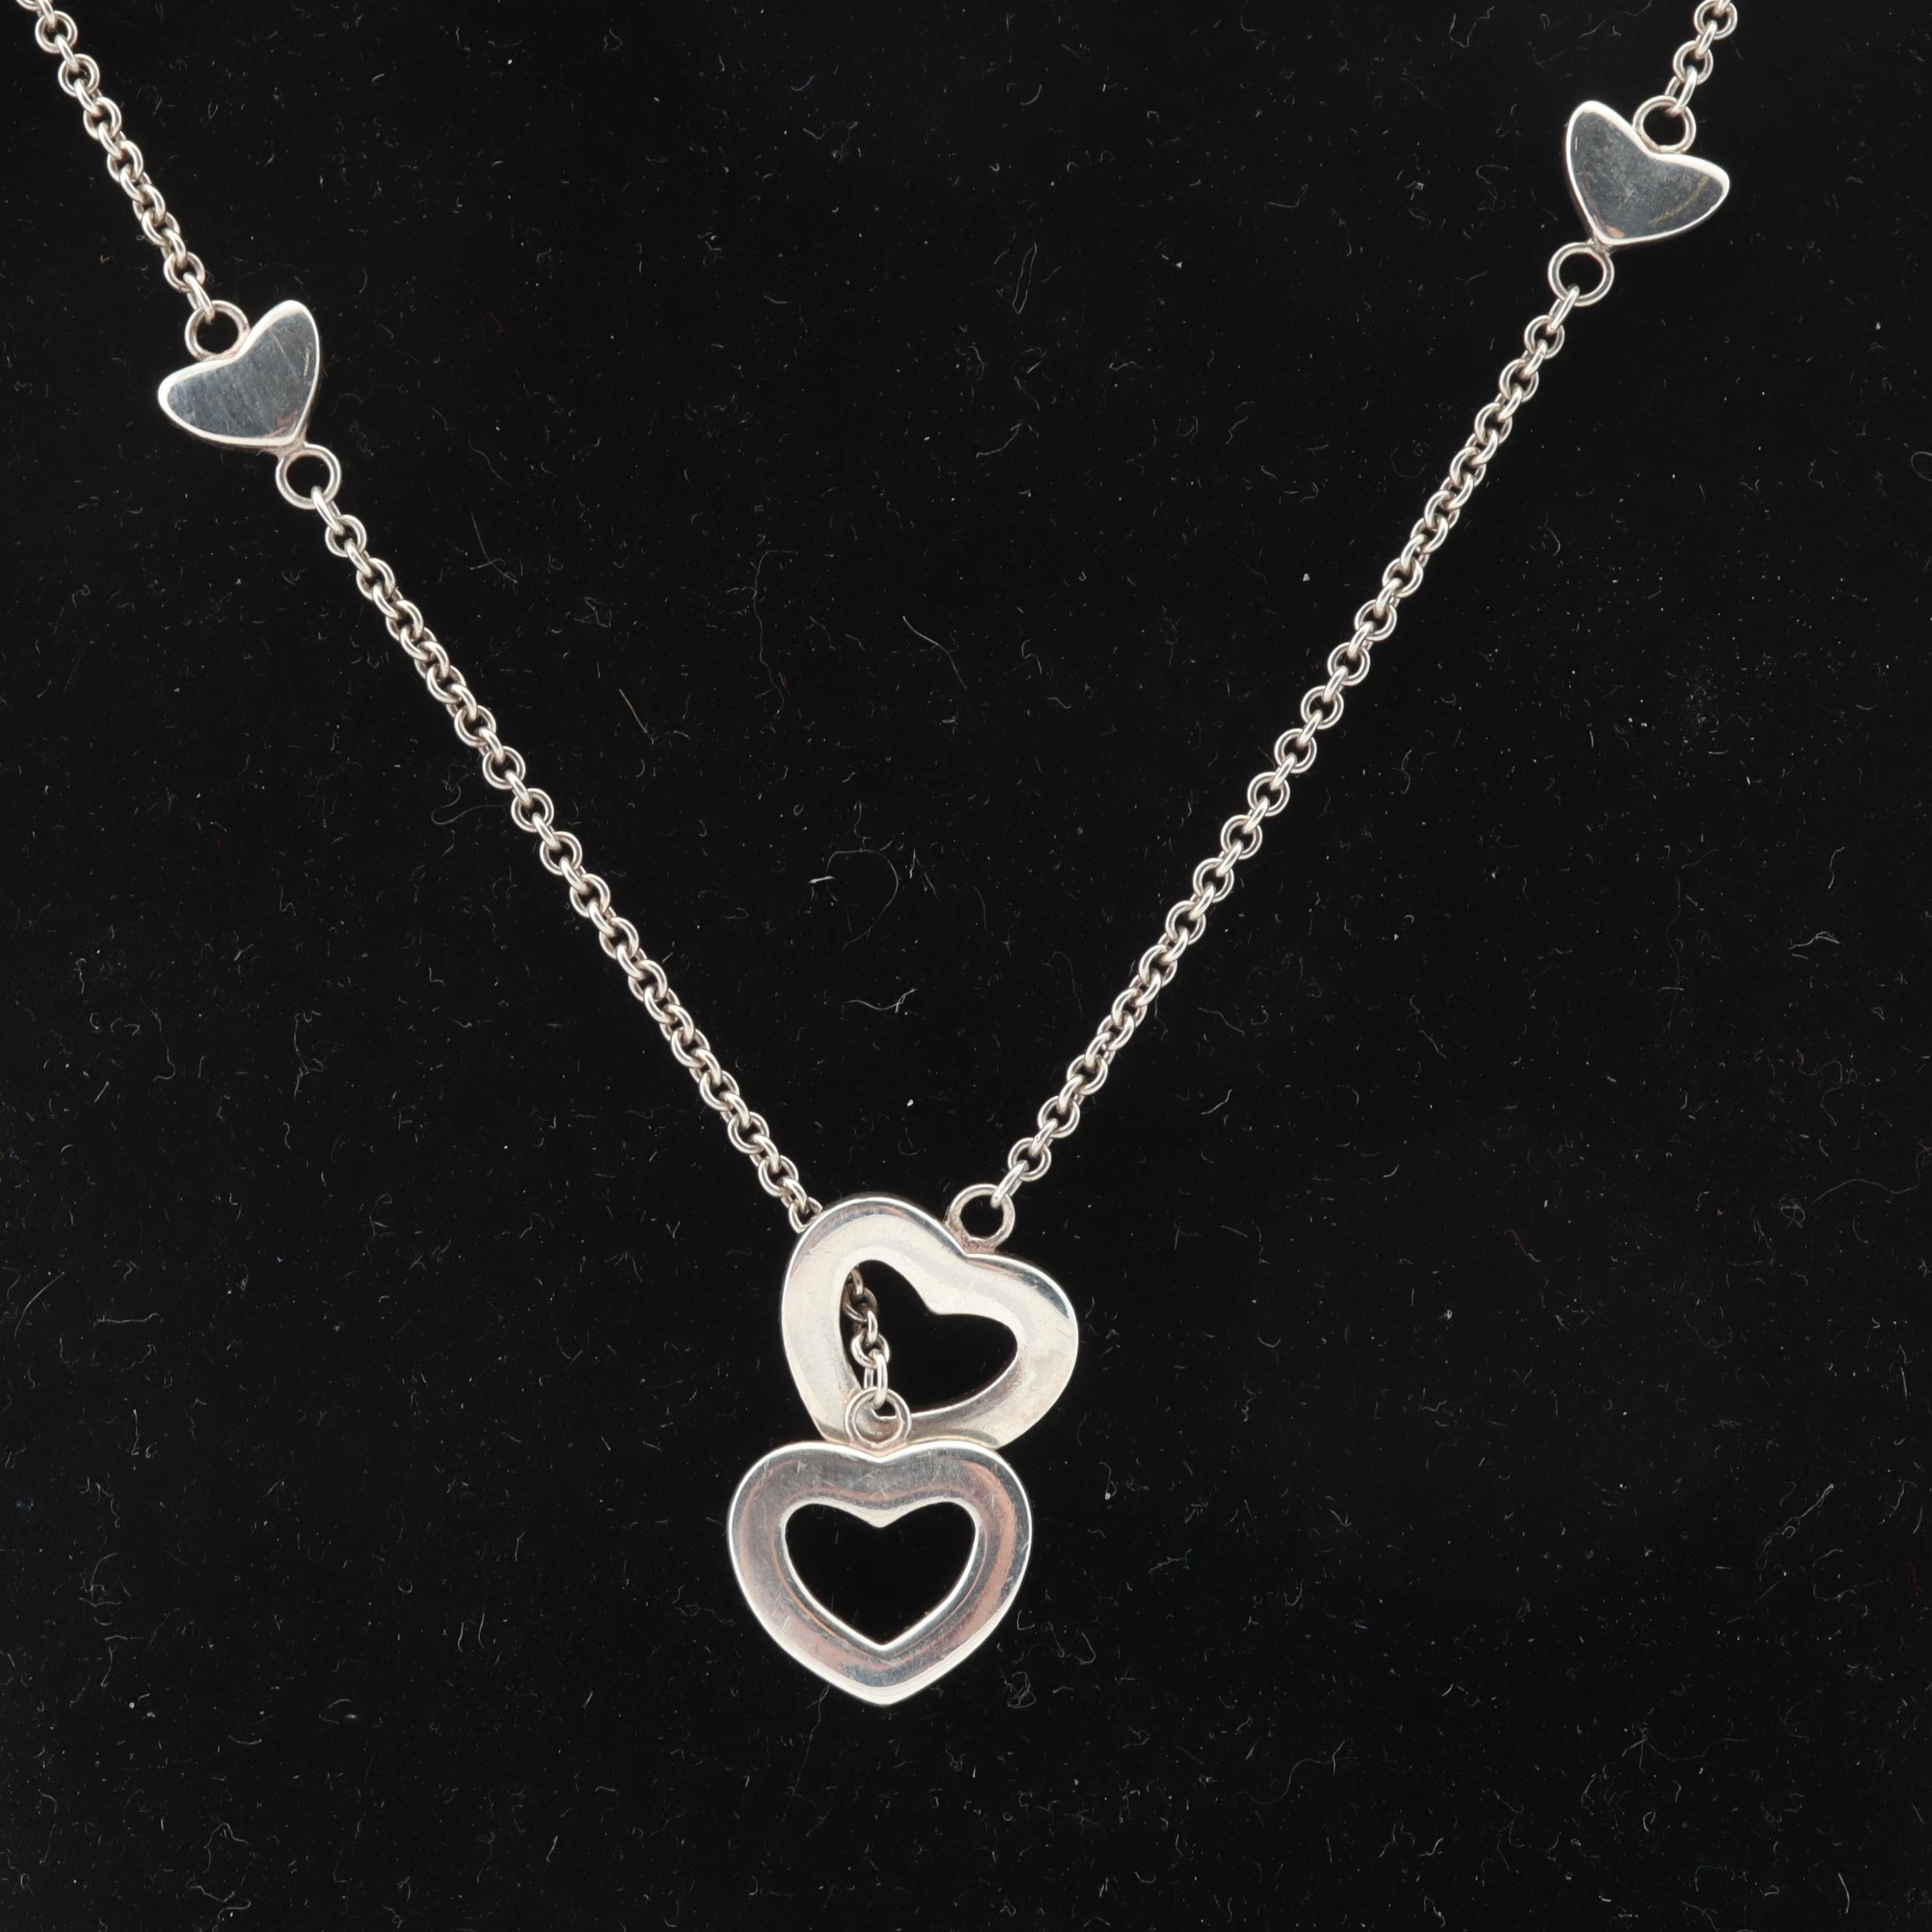 Tiffany & Co Sterling Silver Heart Lariat Necklace